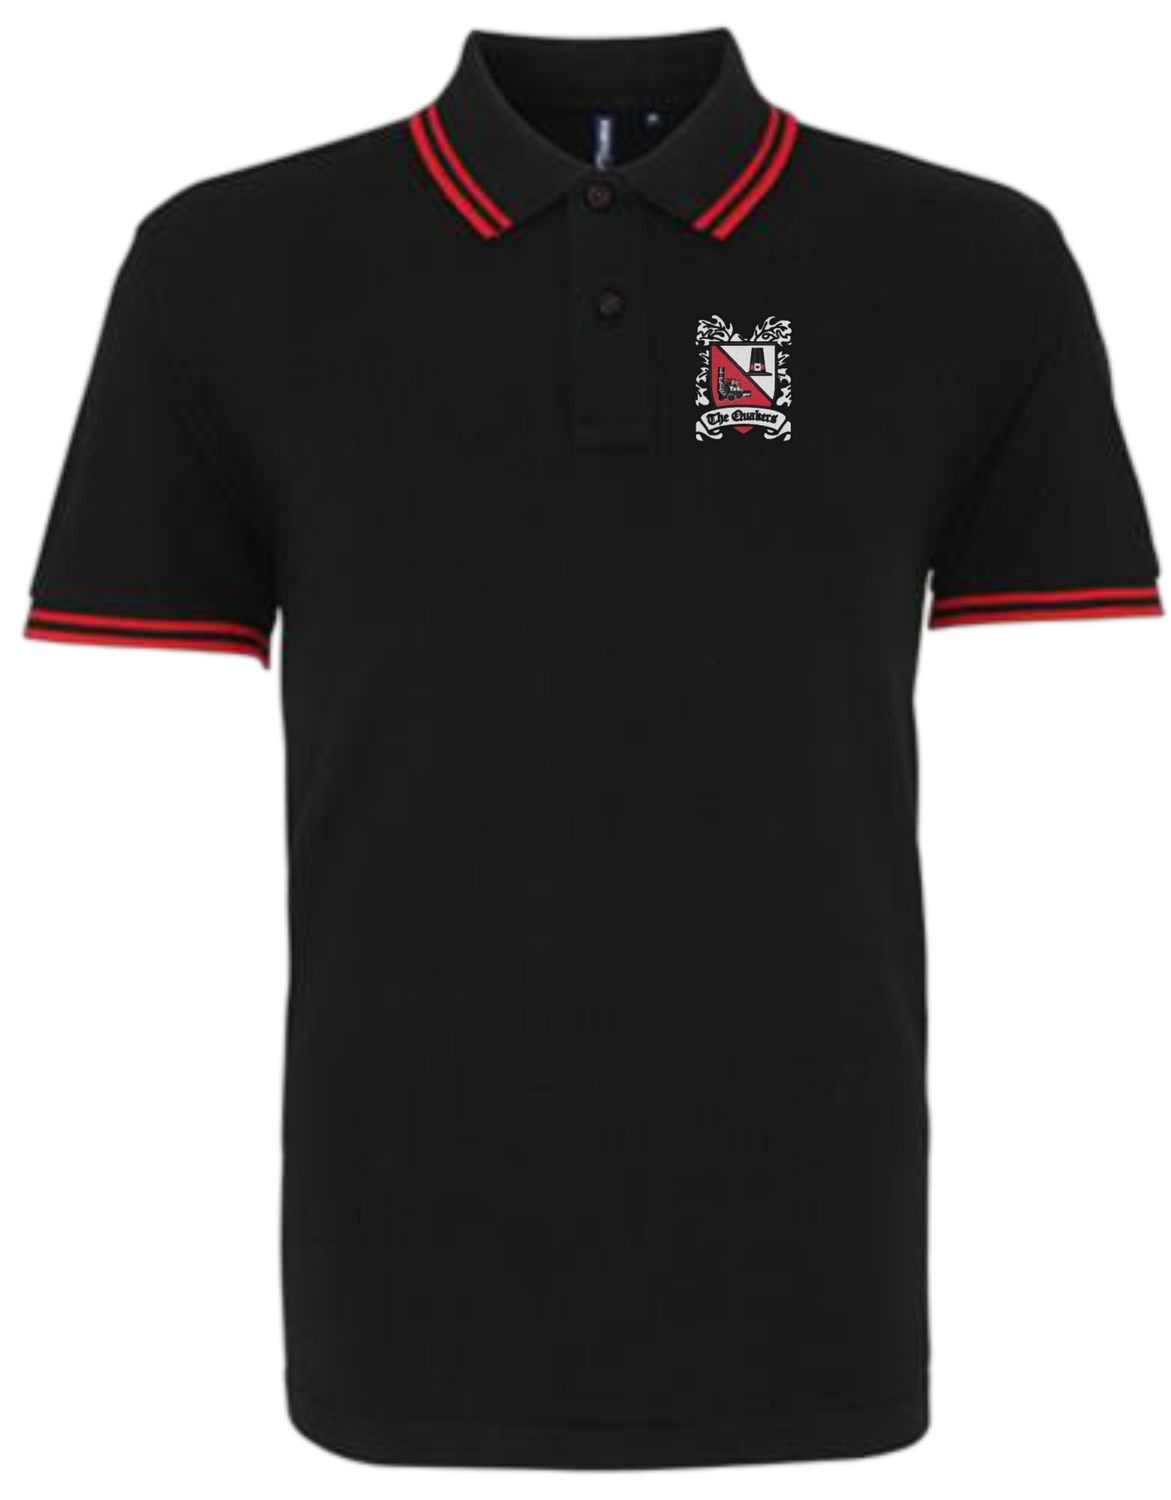 Polo Shirt - Black with Red Trim (Ordered on Request)